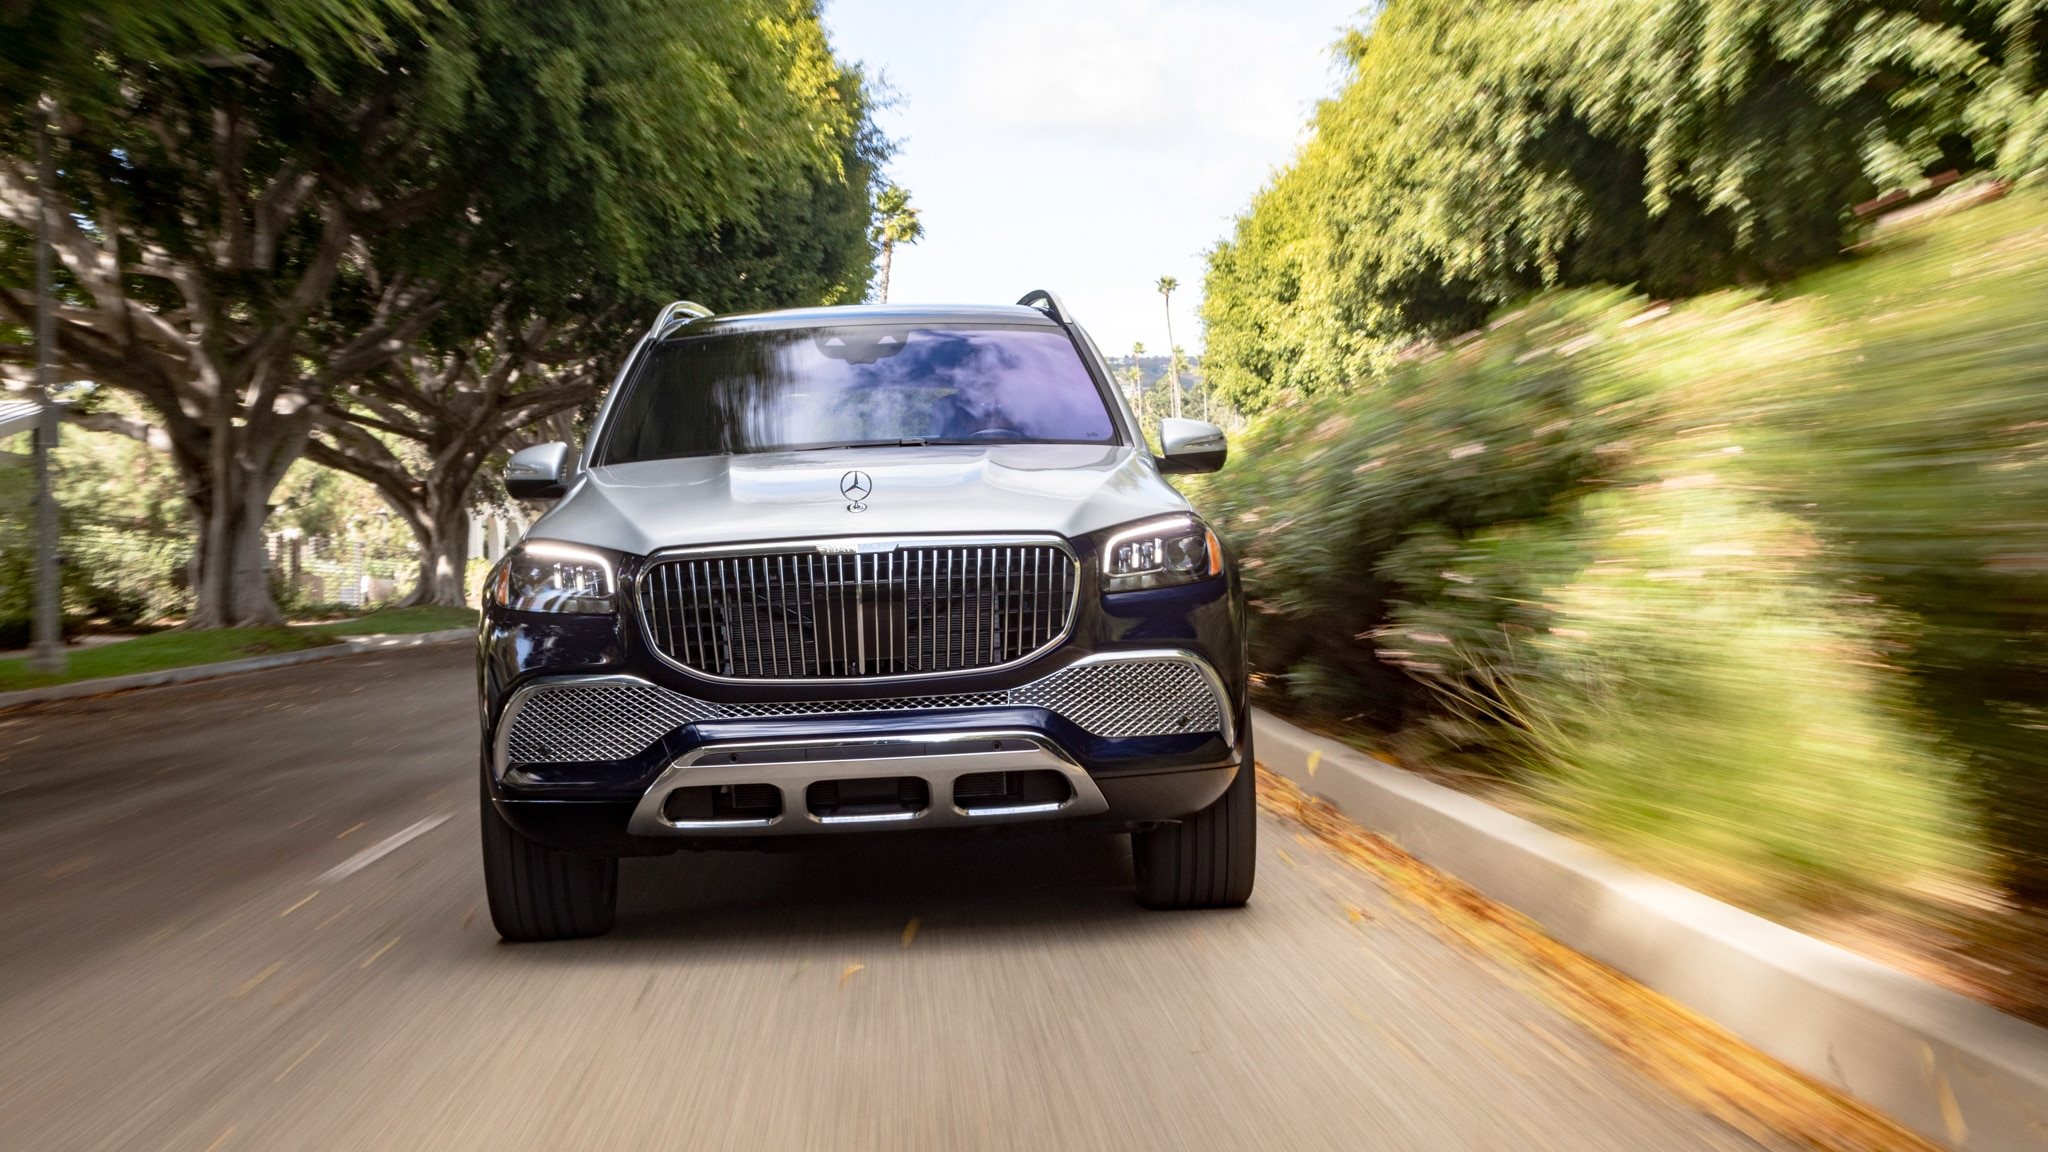 Driven The 2021 Mercedes Maybach Gls 600 4matic Wants You To Live The Good Life